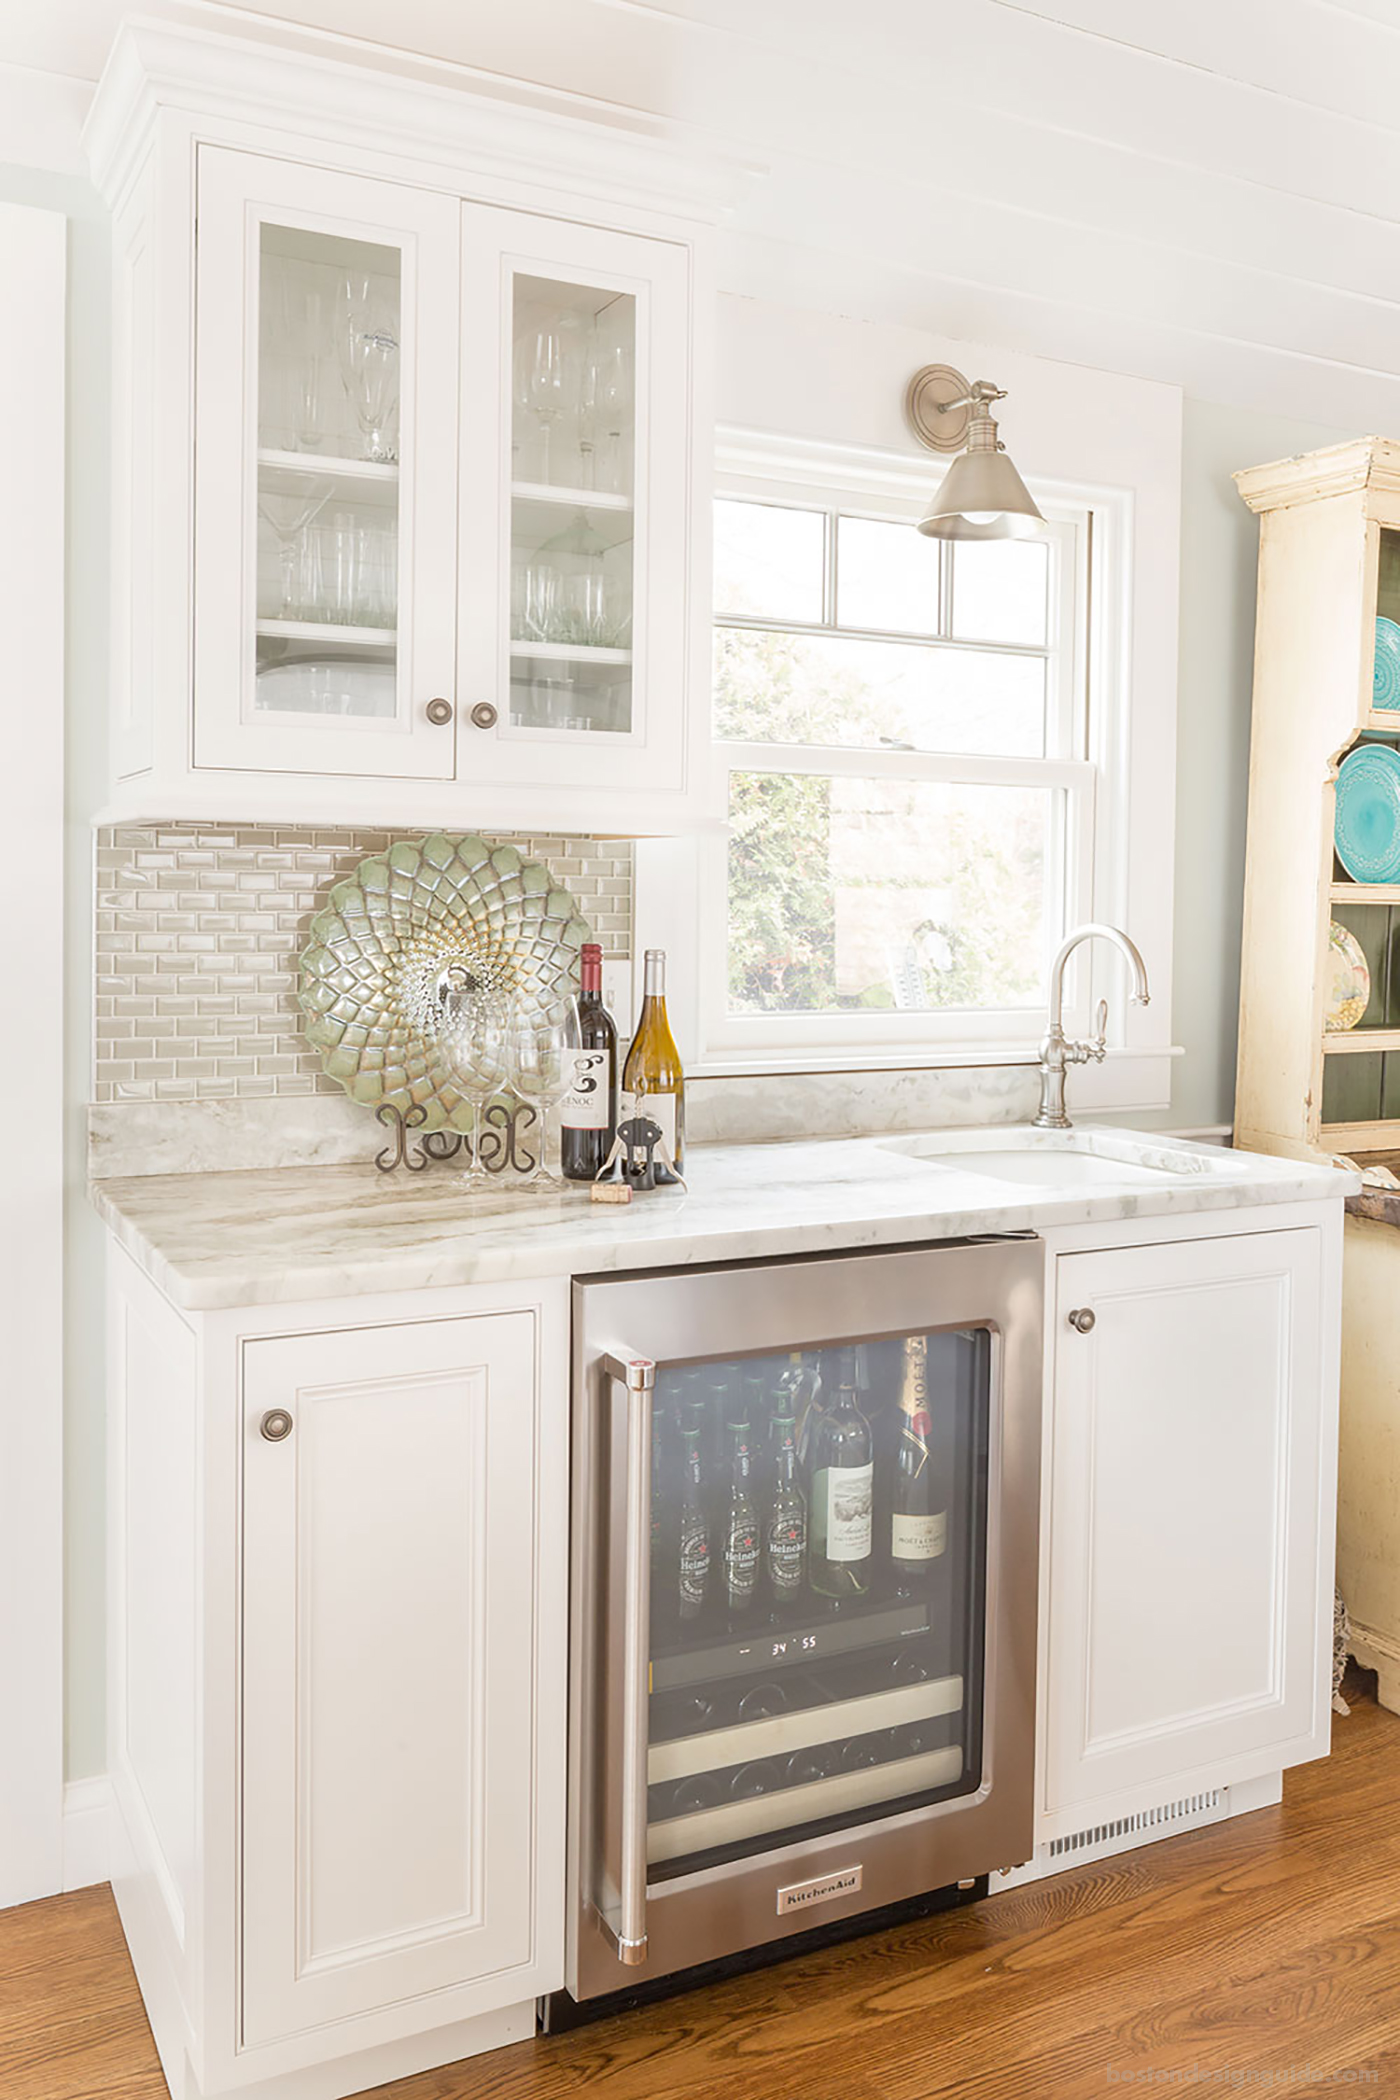 A Cape Cod Cottage-Style Kitchen's New Look | Boston Design Guide Cape Cod Kitchen Design Ideas Html on mother in law suite kitchen ideas, prairie kitchen design ideas, peninsula kitchen design ideas, 2014 kitchen design ideas, fixer upper kitchen design ideas, farmhouse kitchen design ideas, cherry cabinet kitchen design ideas, retro small kitchen design ideas, cape cod cottage kitchen ideas, tuscan kitchen design ideas, modular kitchen design ideas, cottage kitchen design ideas, 10 x 10 kitchen design ideas, double wide kitchen design ideas, 2015 kitchen design ideas, rustic birch kitchen design ideas, contemporary kitchen design ideas, yellow kitchen wall color ideas, cape house kitchen, blue gray kitchen cabinets color ideas,